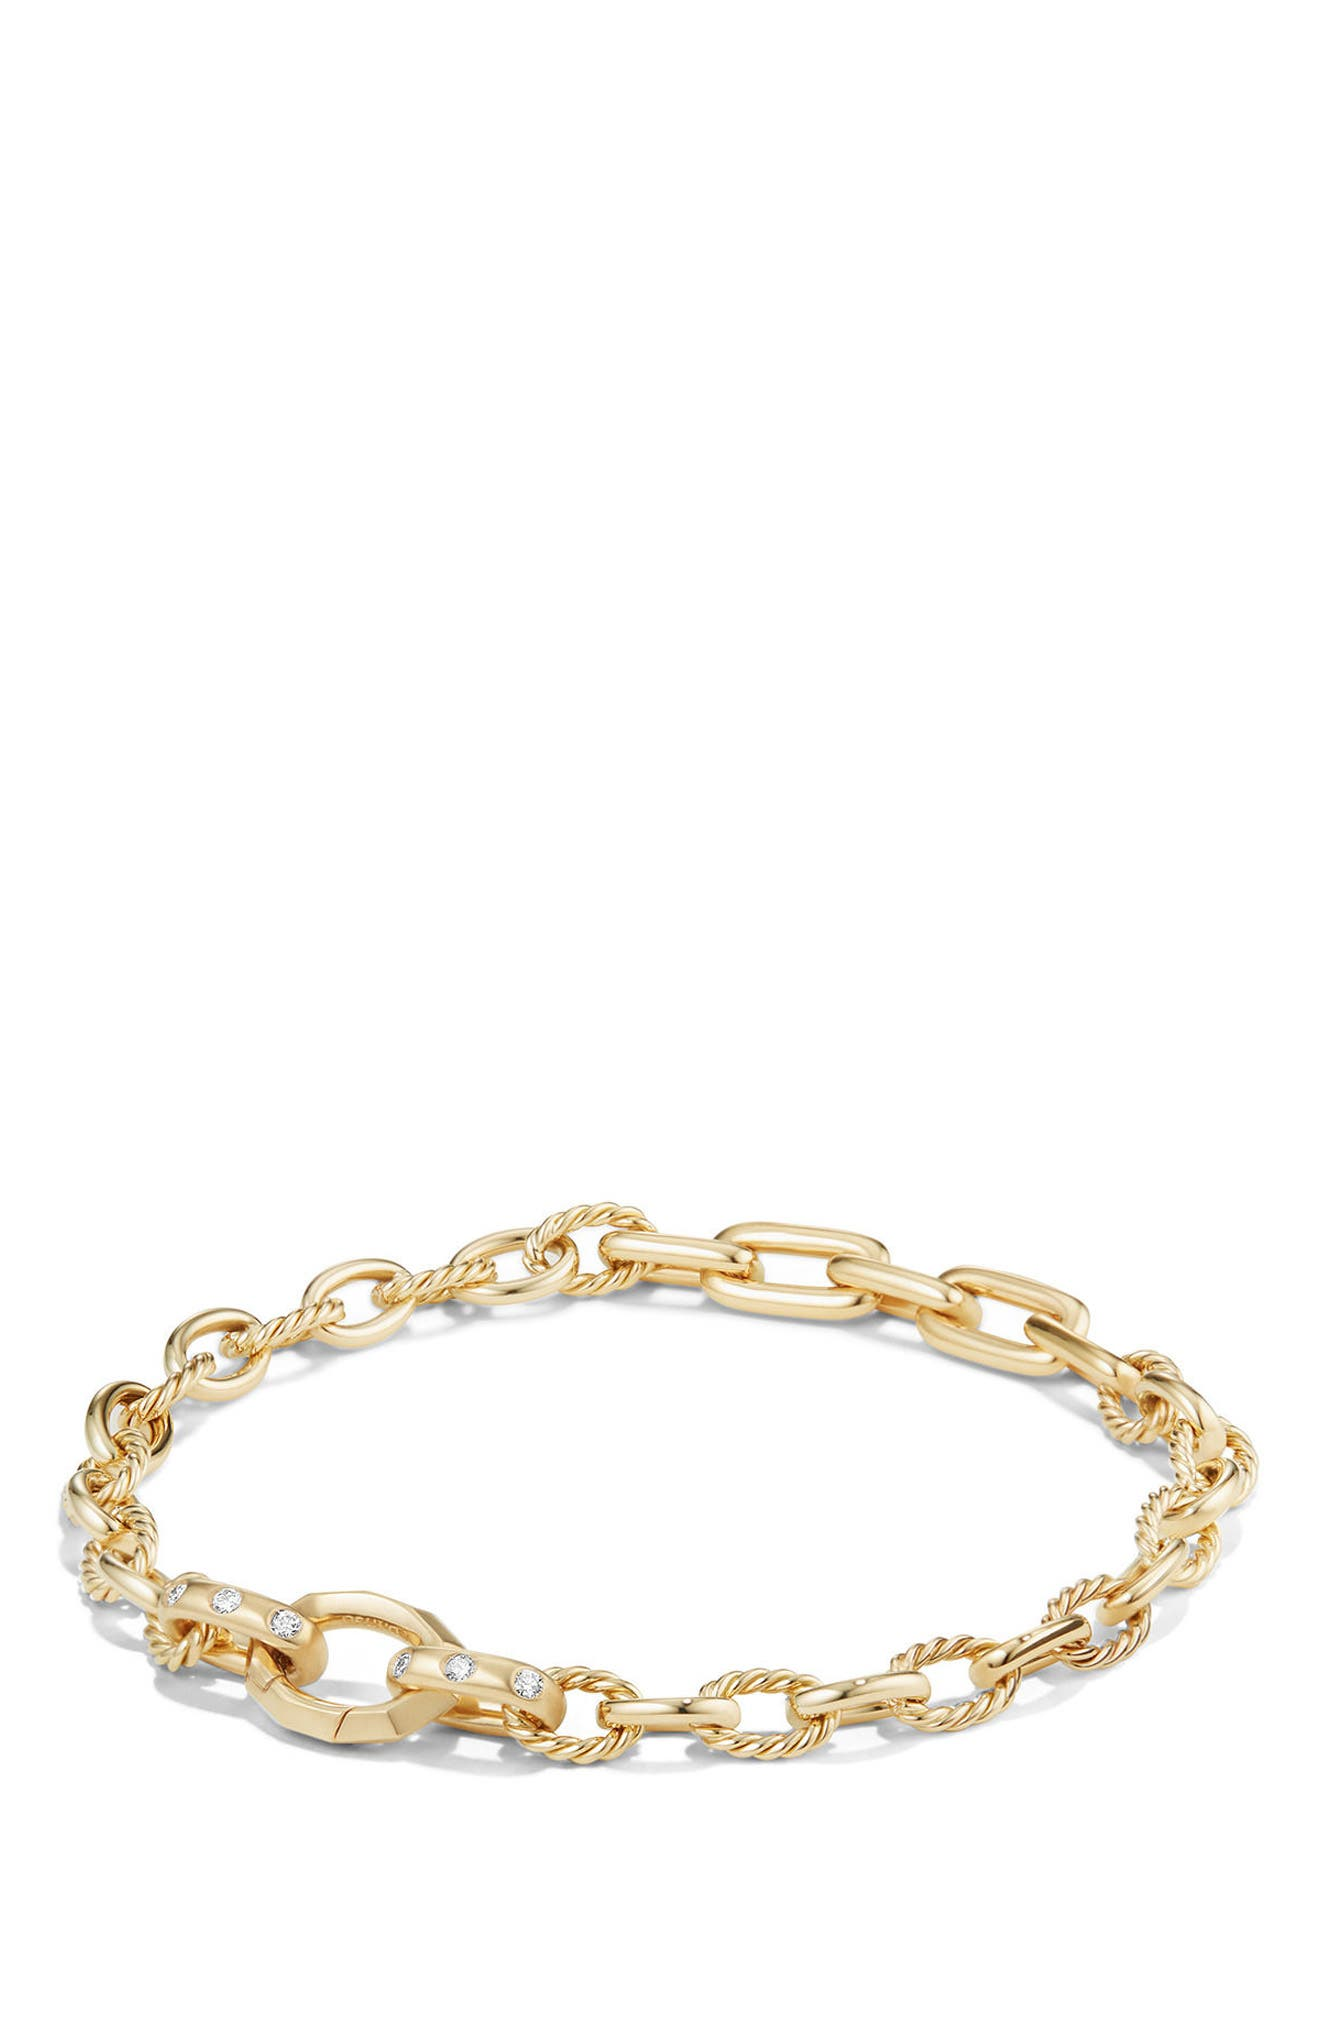 Stax Chain Bracelet with Diamonds in 18K Gold,                         Main,                         color, Yellow Gold/ Diamond